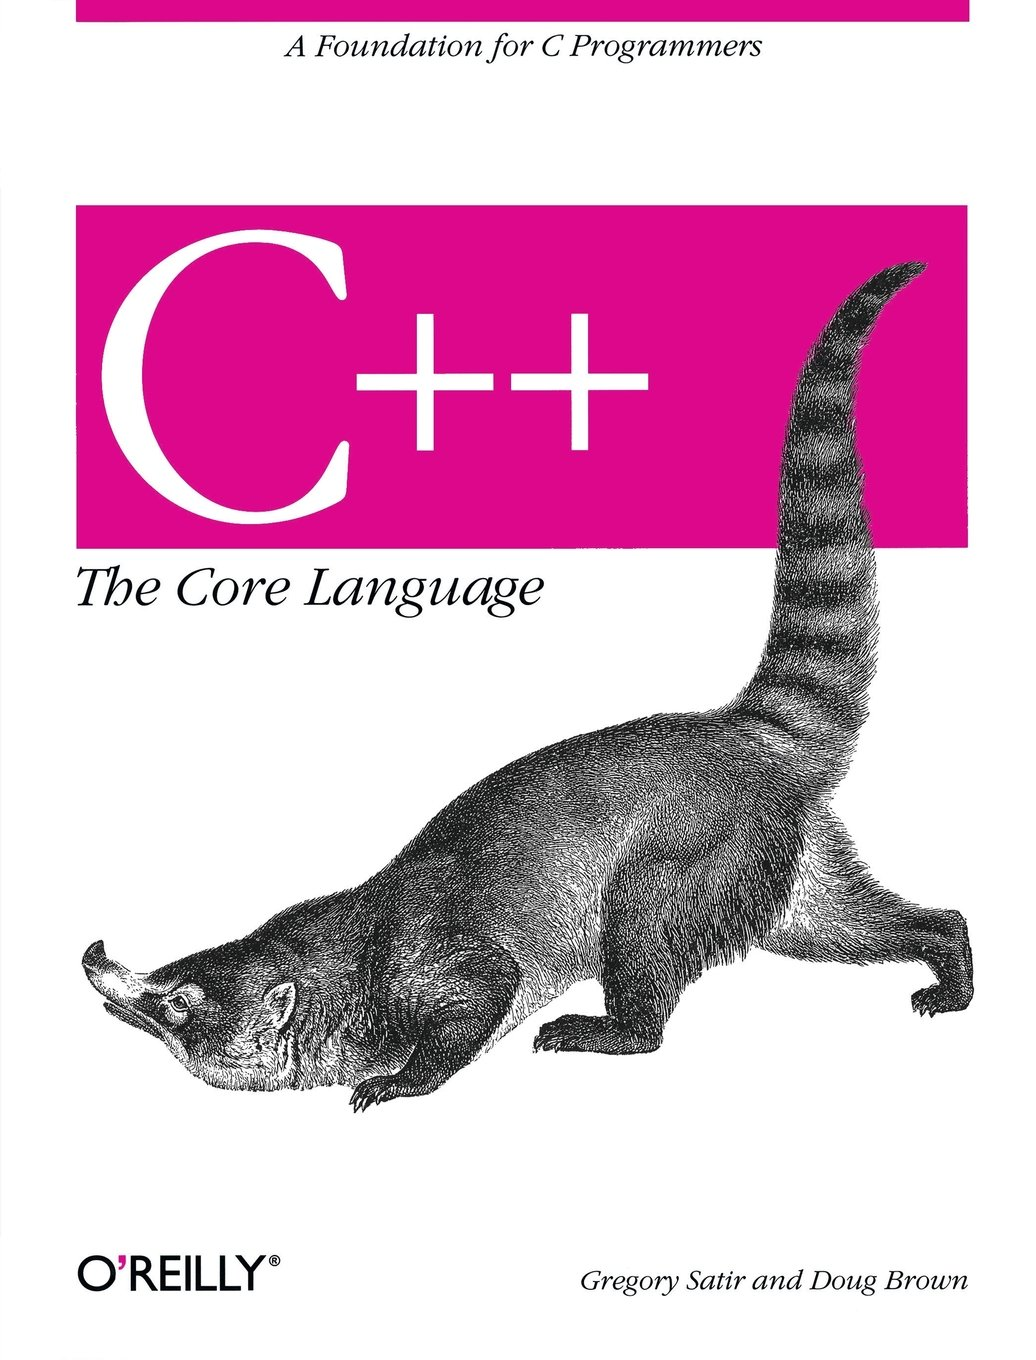 C++ The Core Language: A Foundation for C Programmers (Nutshell Handbooks) by Brand: O'Reilly n Associates